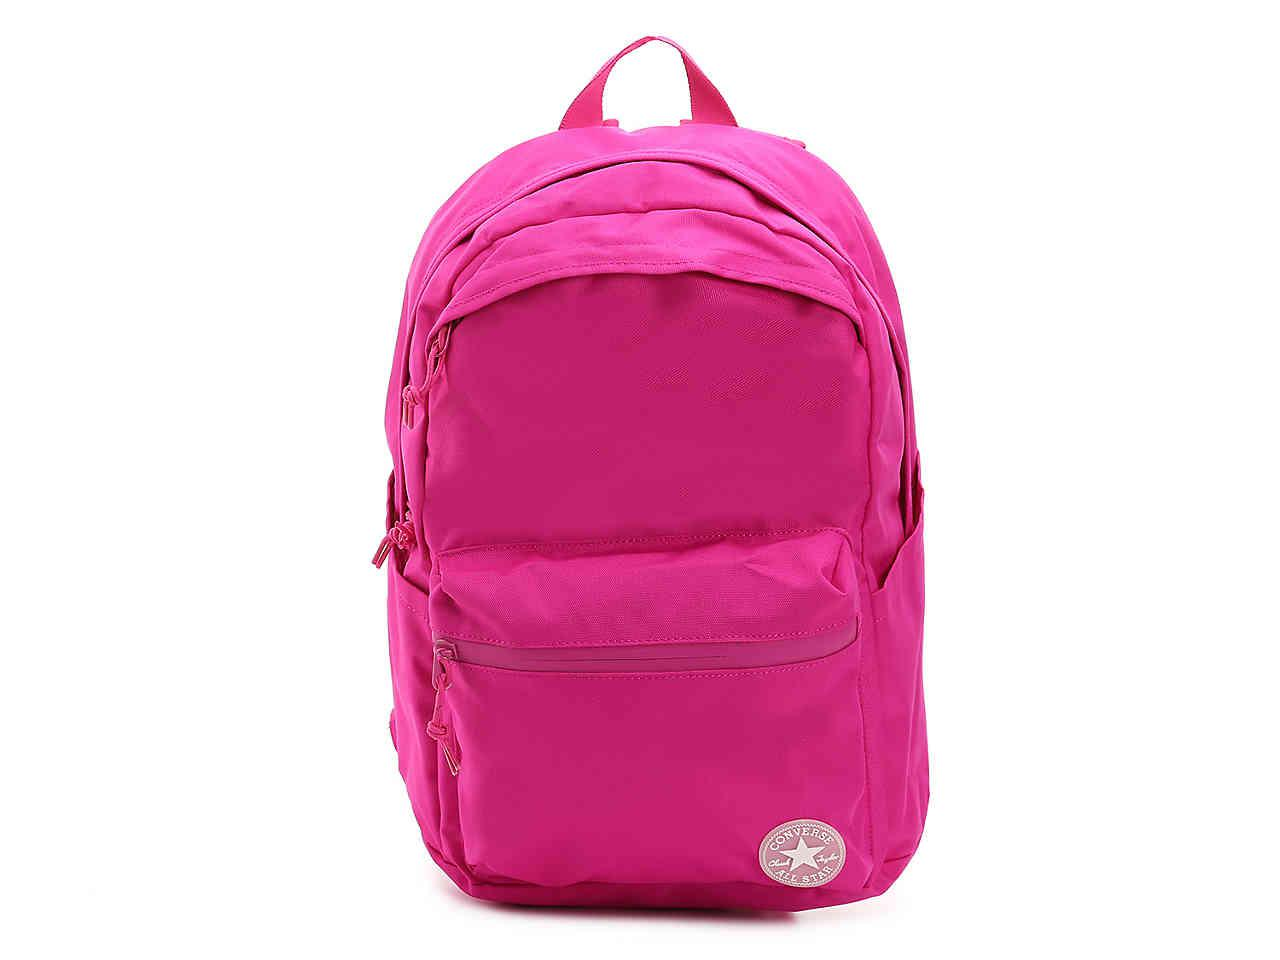 Lyst - Converse Chuck Plus Backpack in Pink 1800f43820878